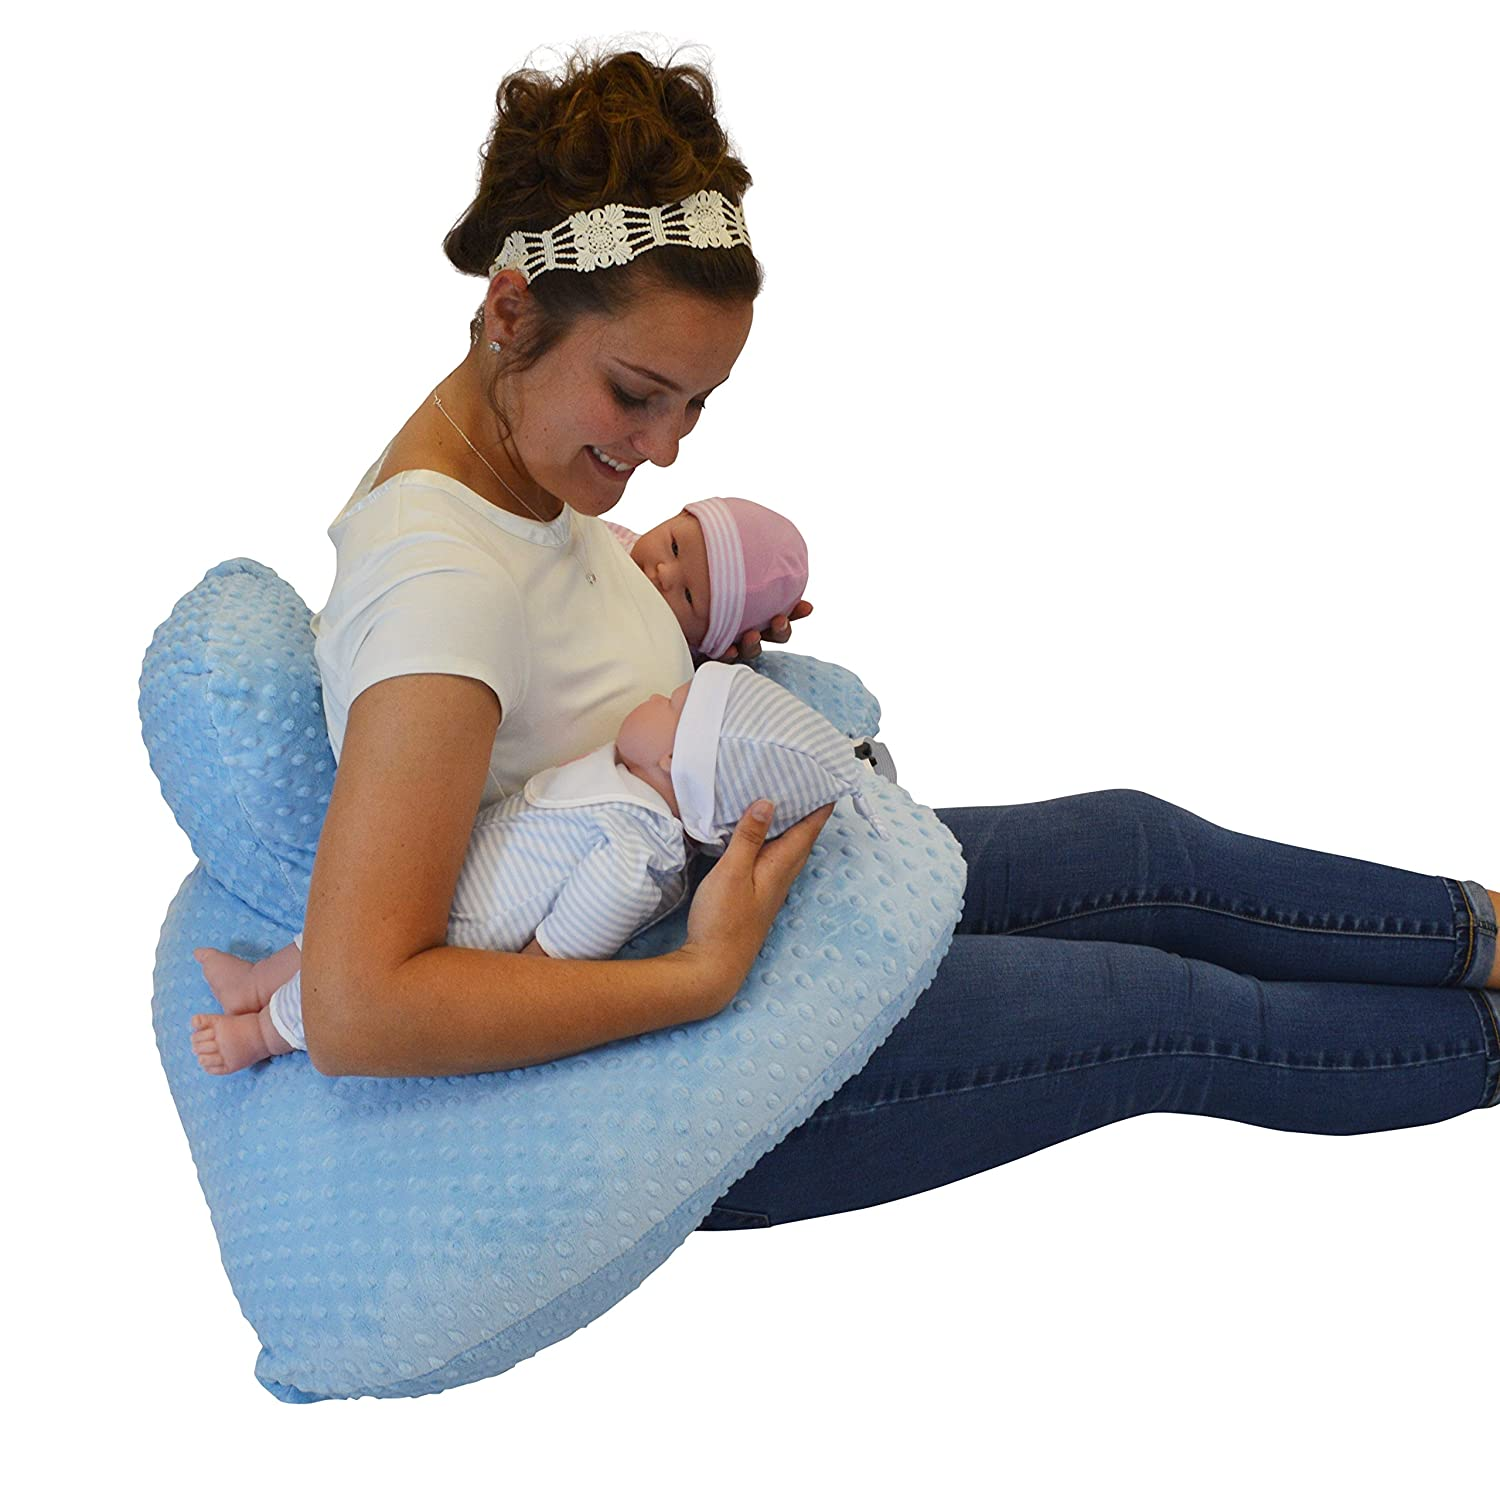 body support pillow maternity detail blanket primark feeding nursing sleeping australia cushion pregnancy best products